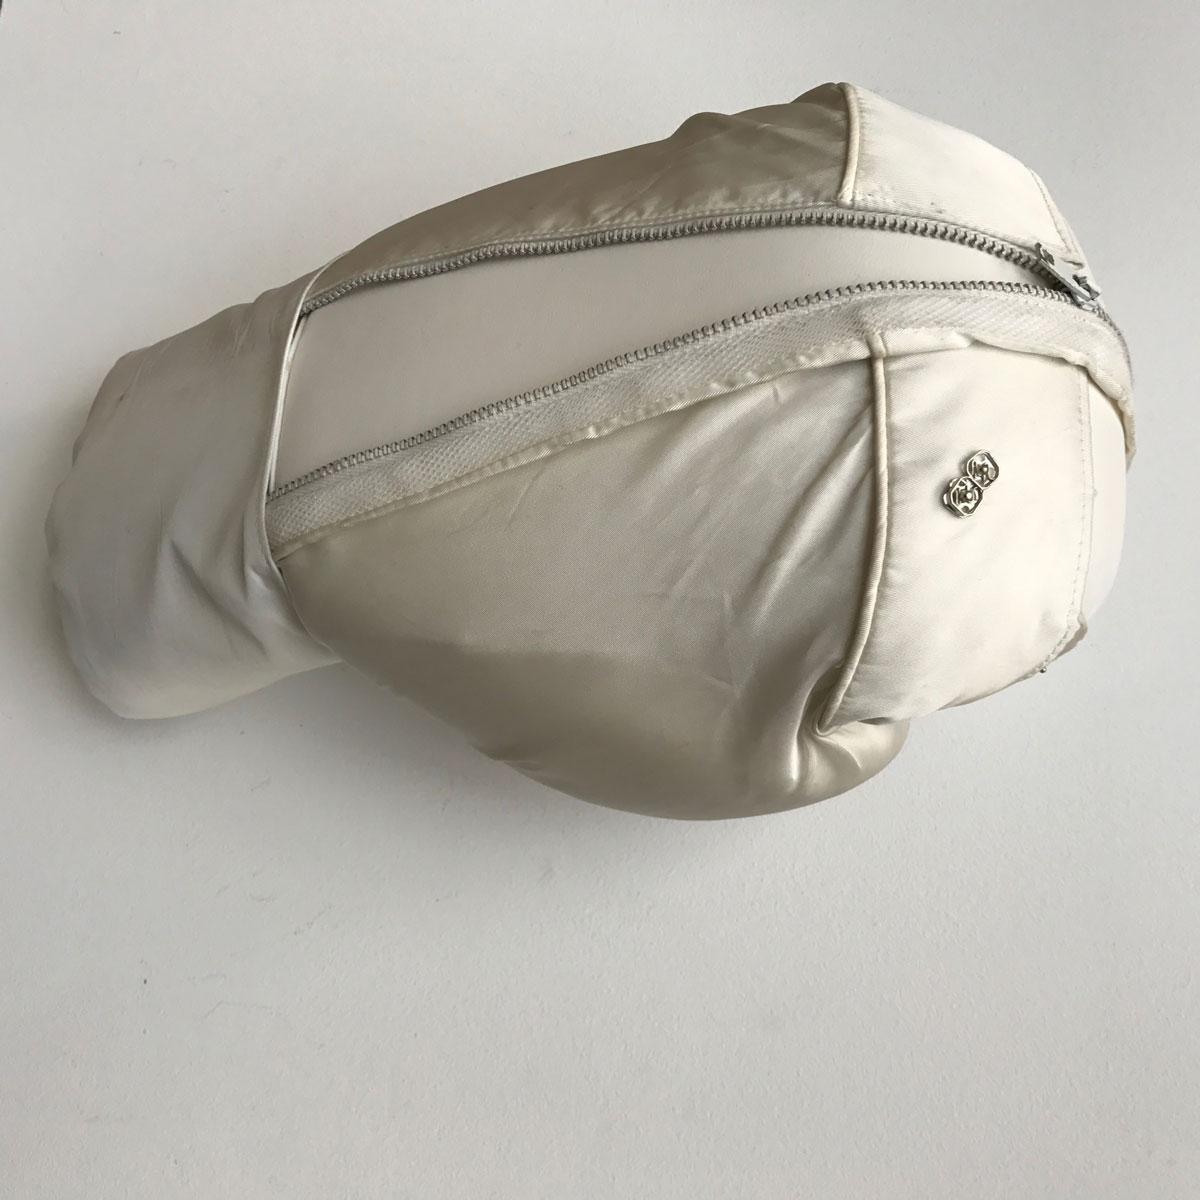 Boxing glove sculpture with wedding dress details by Zoe Buckman